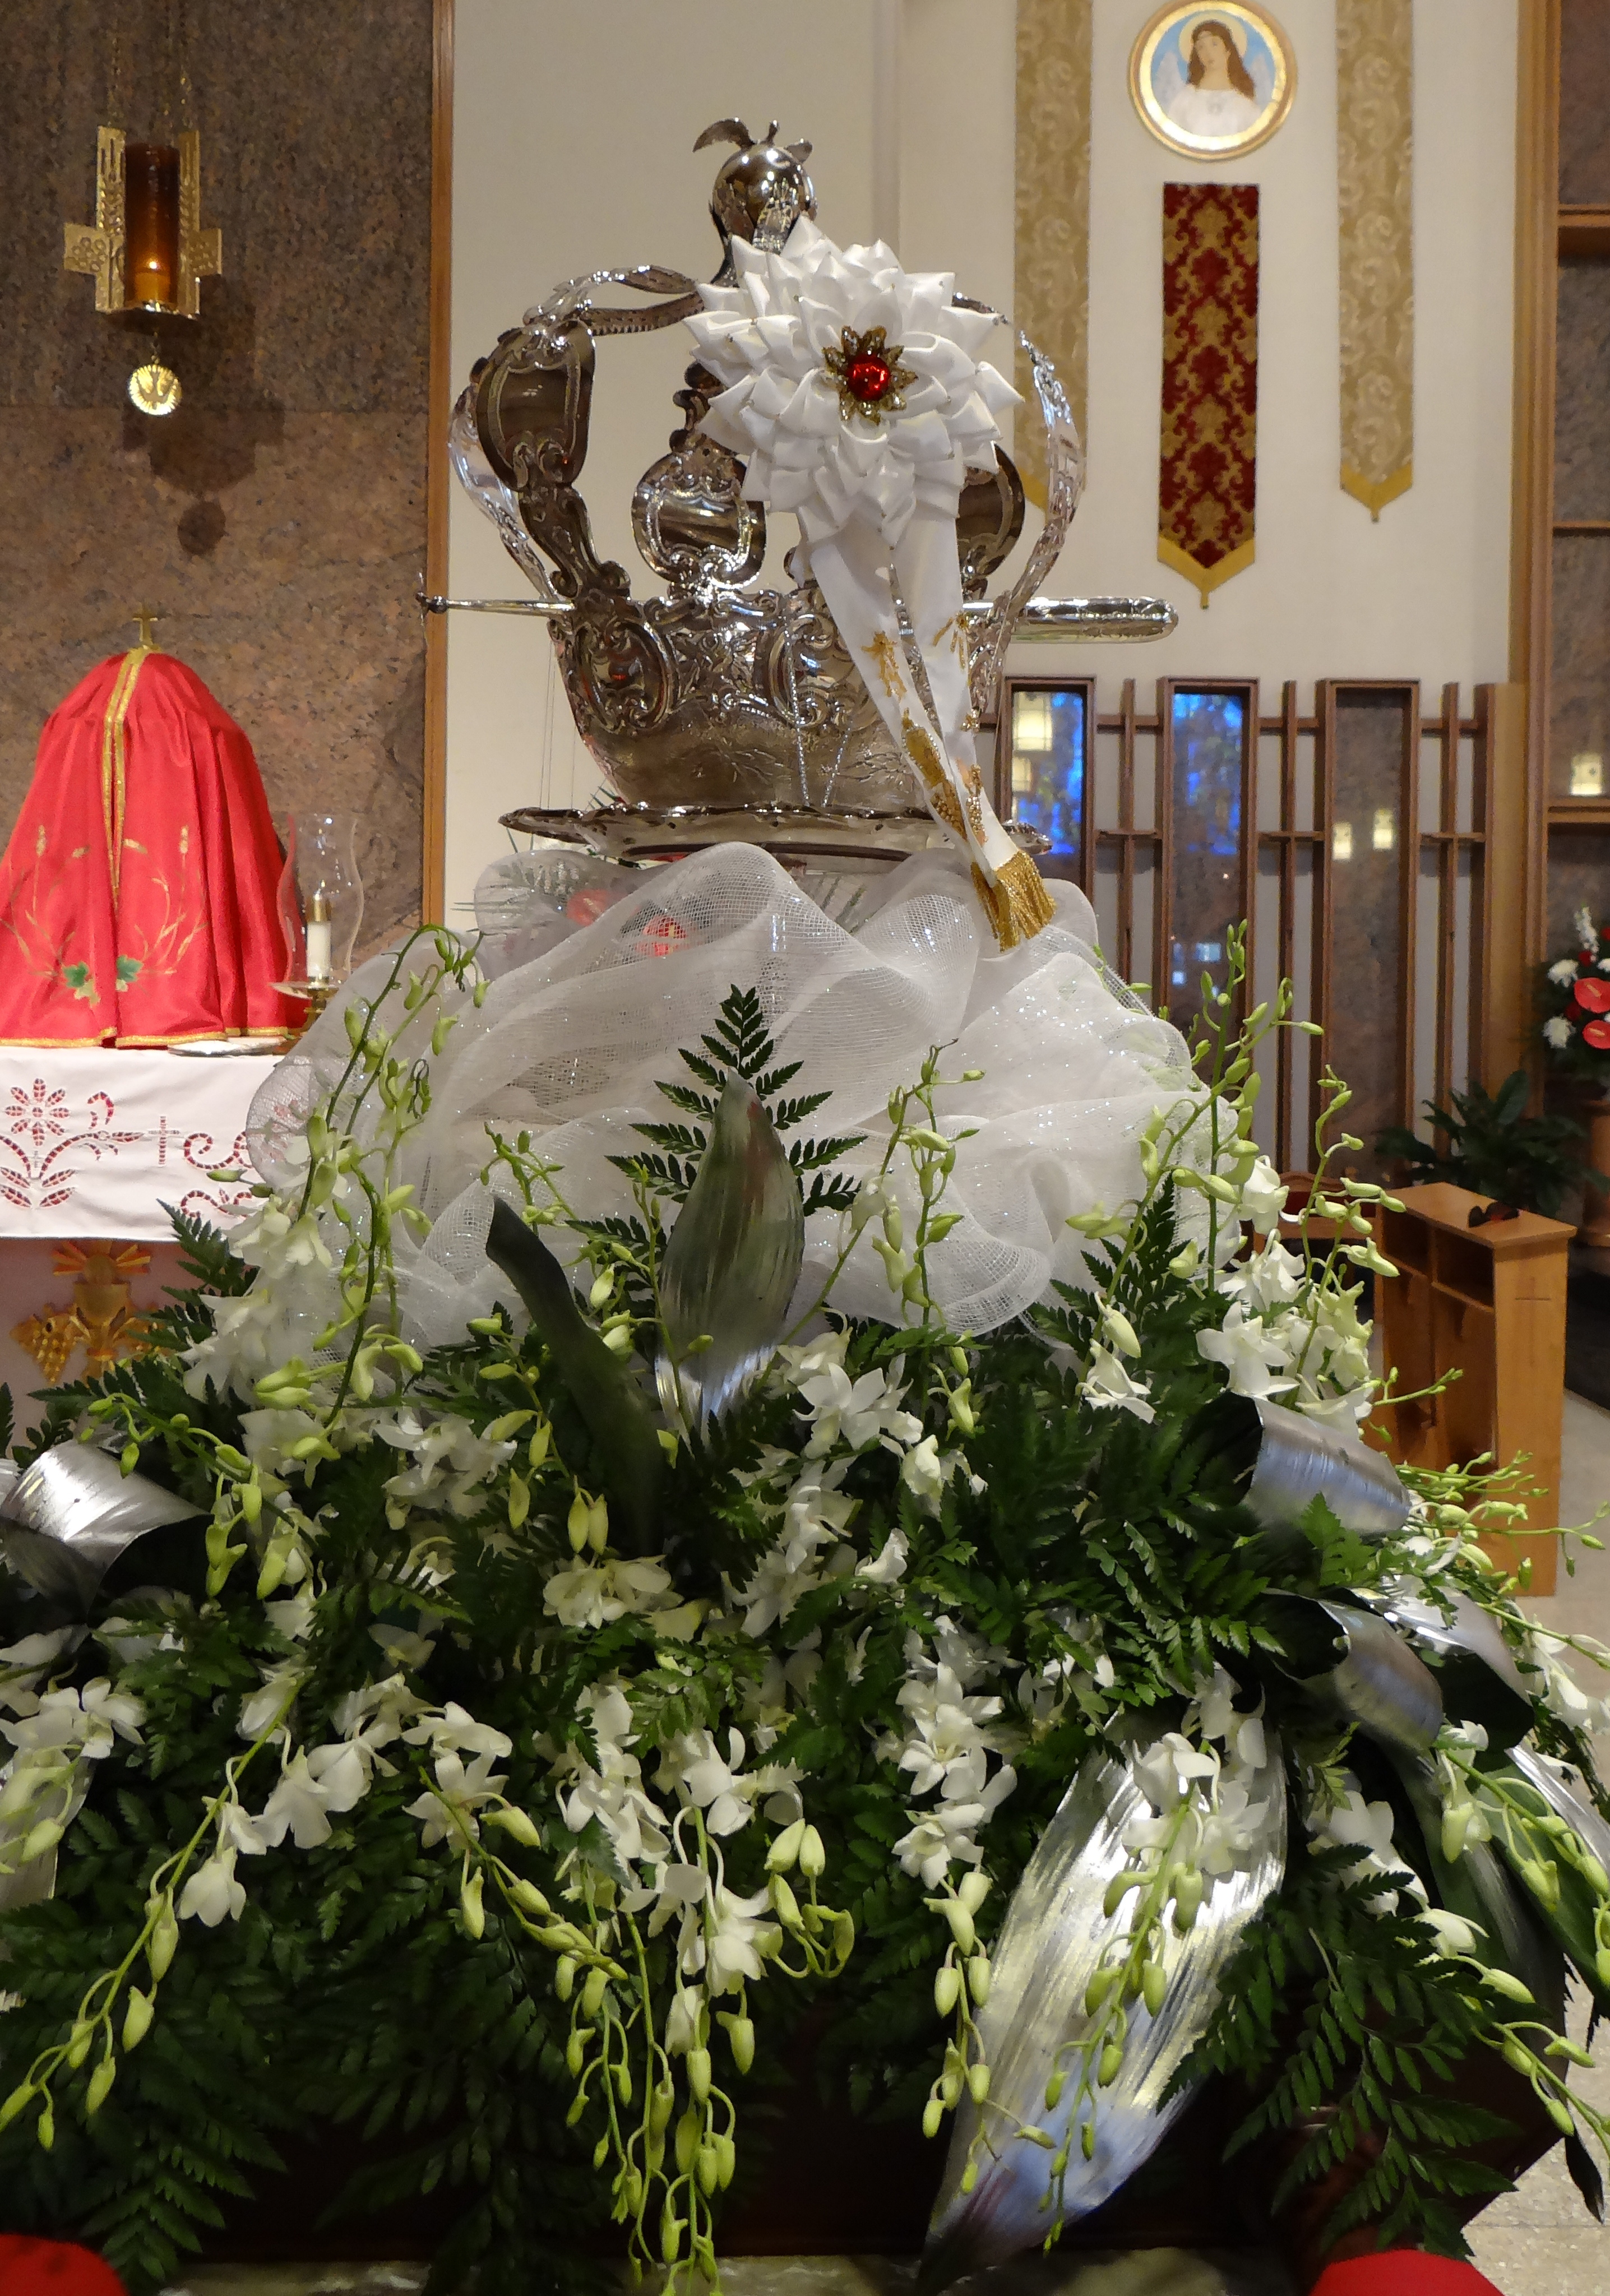 The Holy Ghost Feast at Espirito Santo Church, Fall River, MA - the